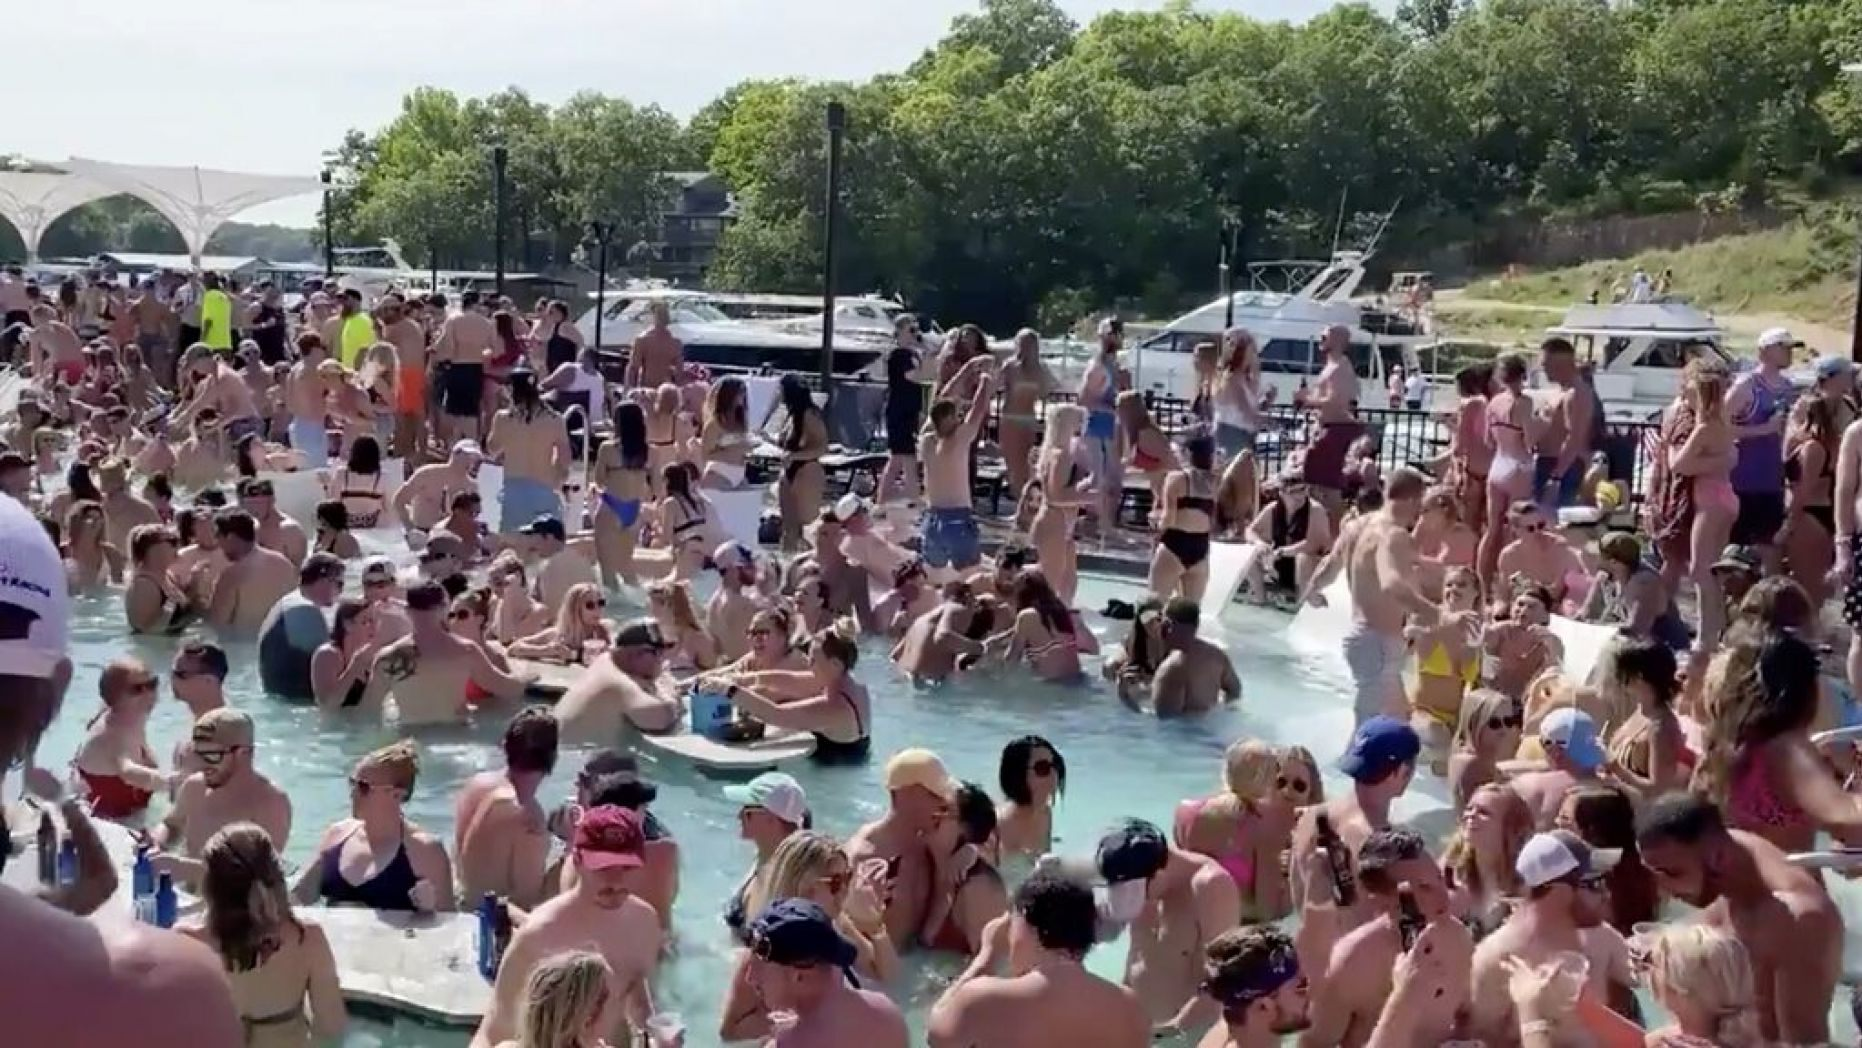 No new coronavirus cases reported in Lake of the Ozarks partiers, health official says - fox